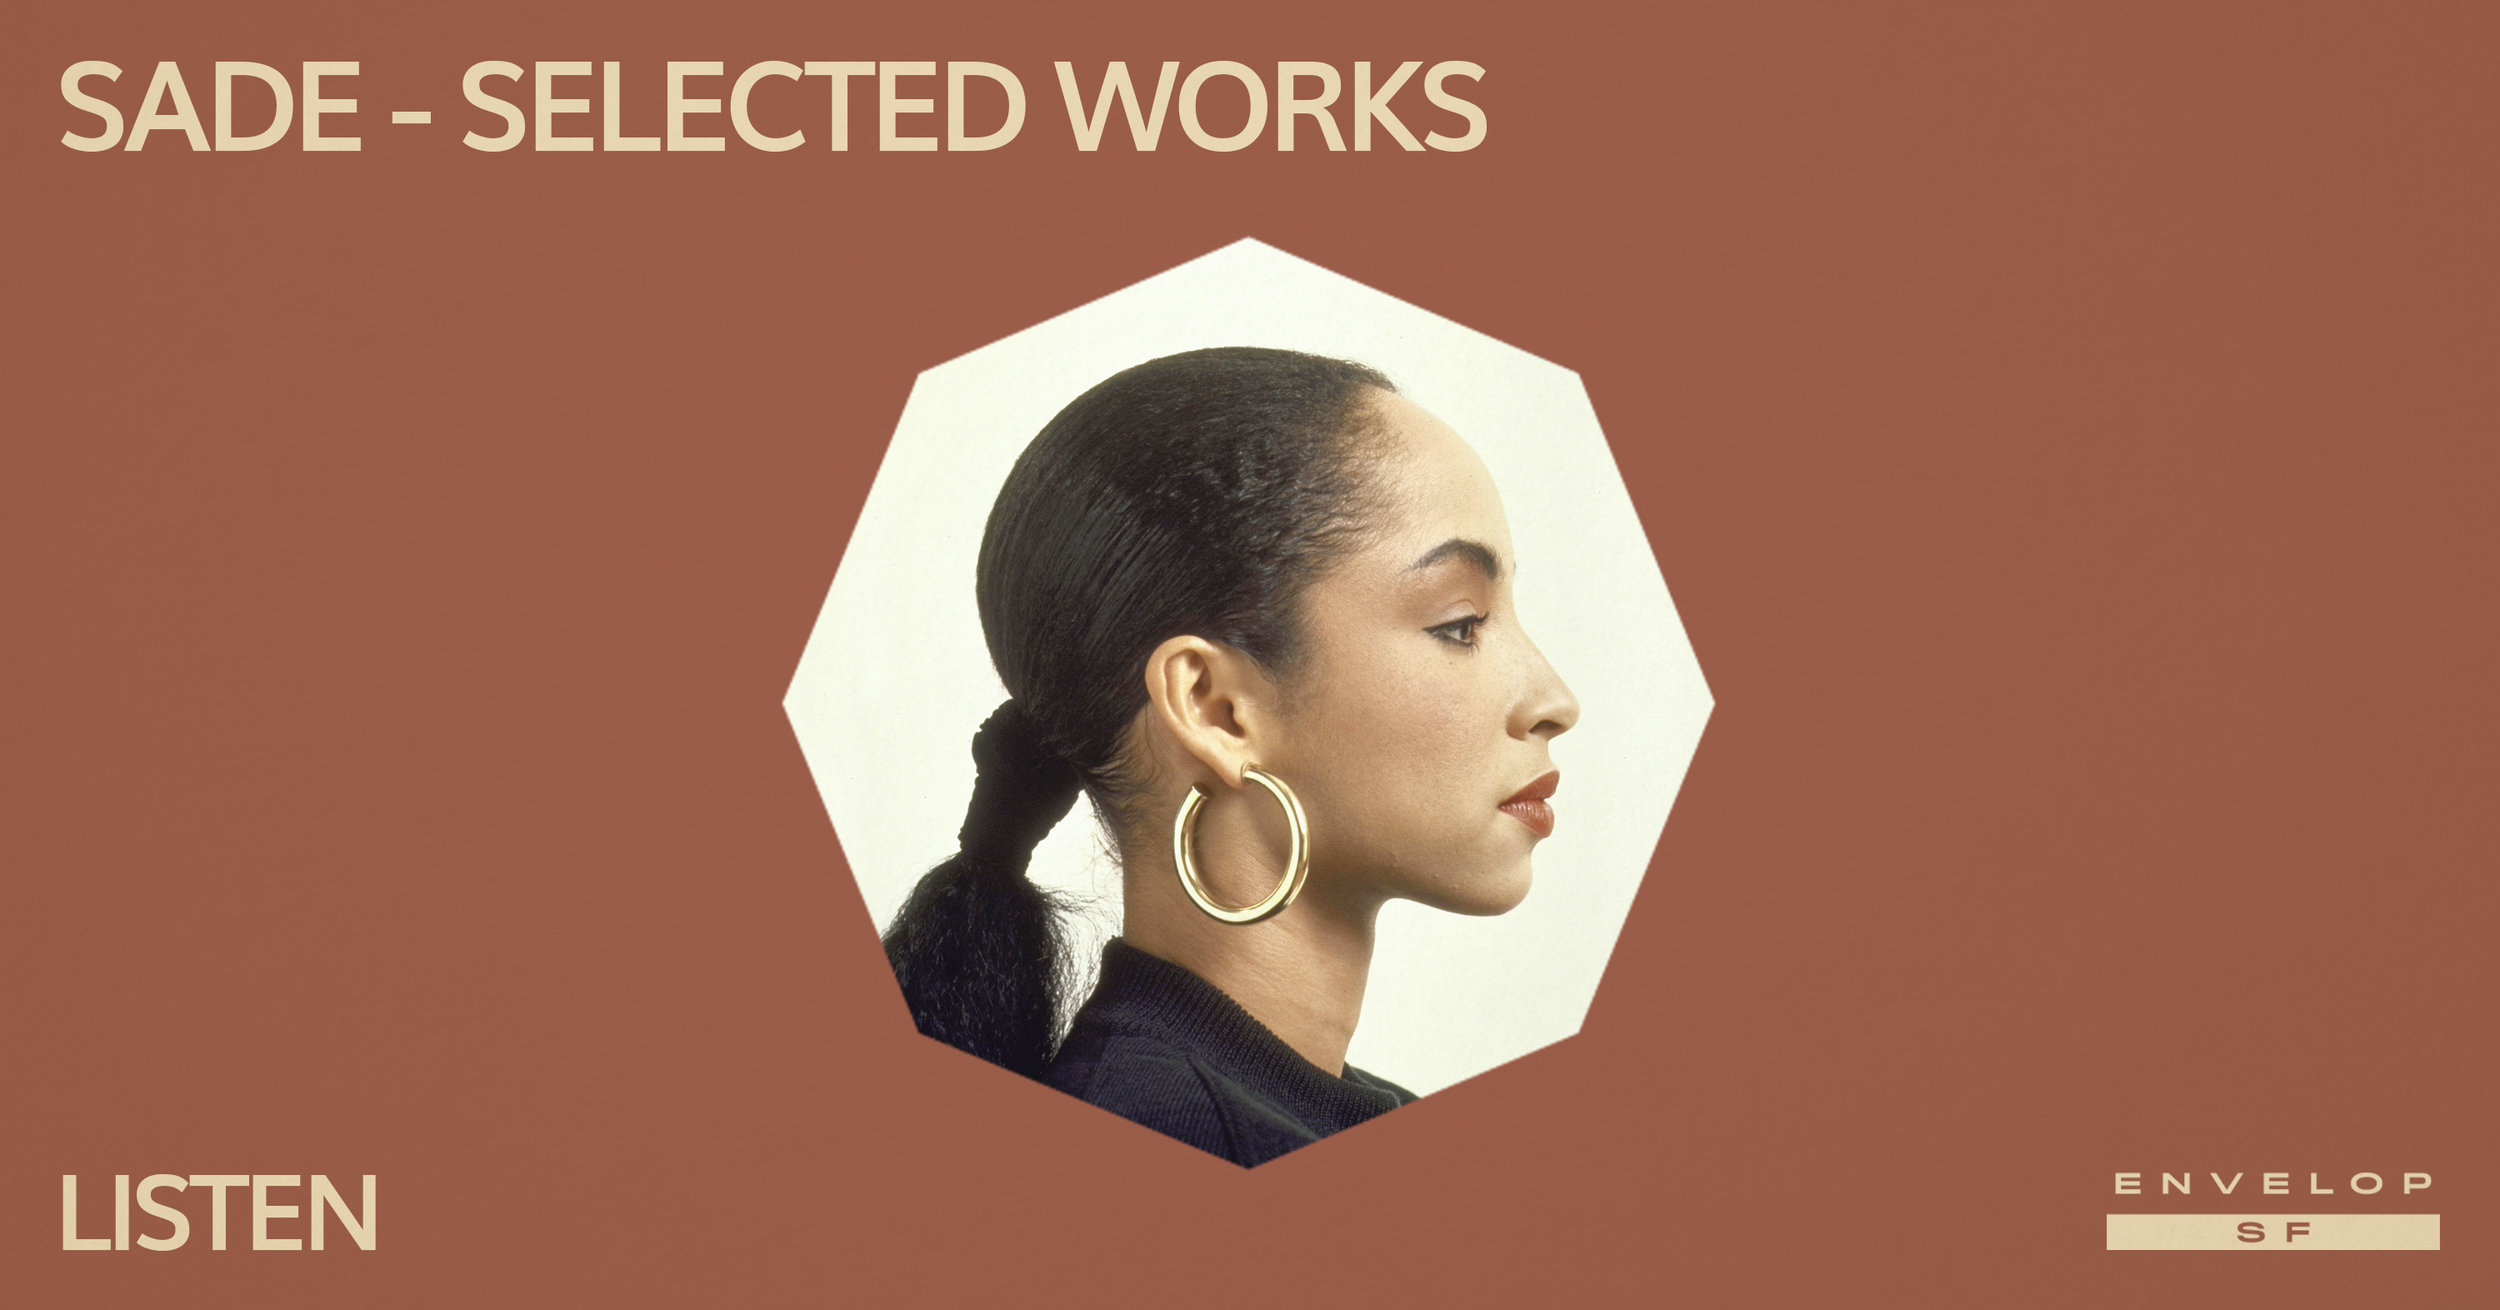 Sade - Selected Works : LISTEN   Thu February 28, 2019 | At Envelop SF | 1st Session 7:30 PM doors/ 2nd Session 9:30 PM doors